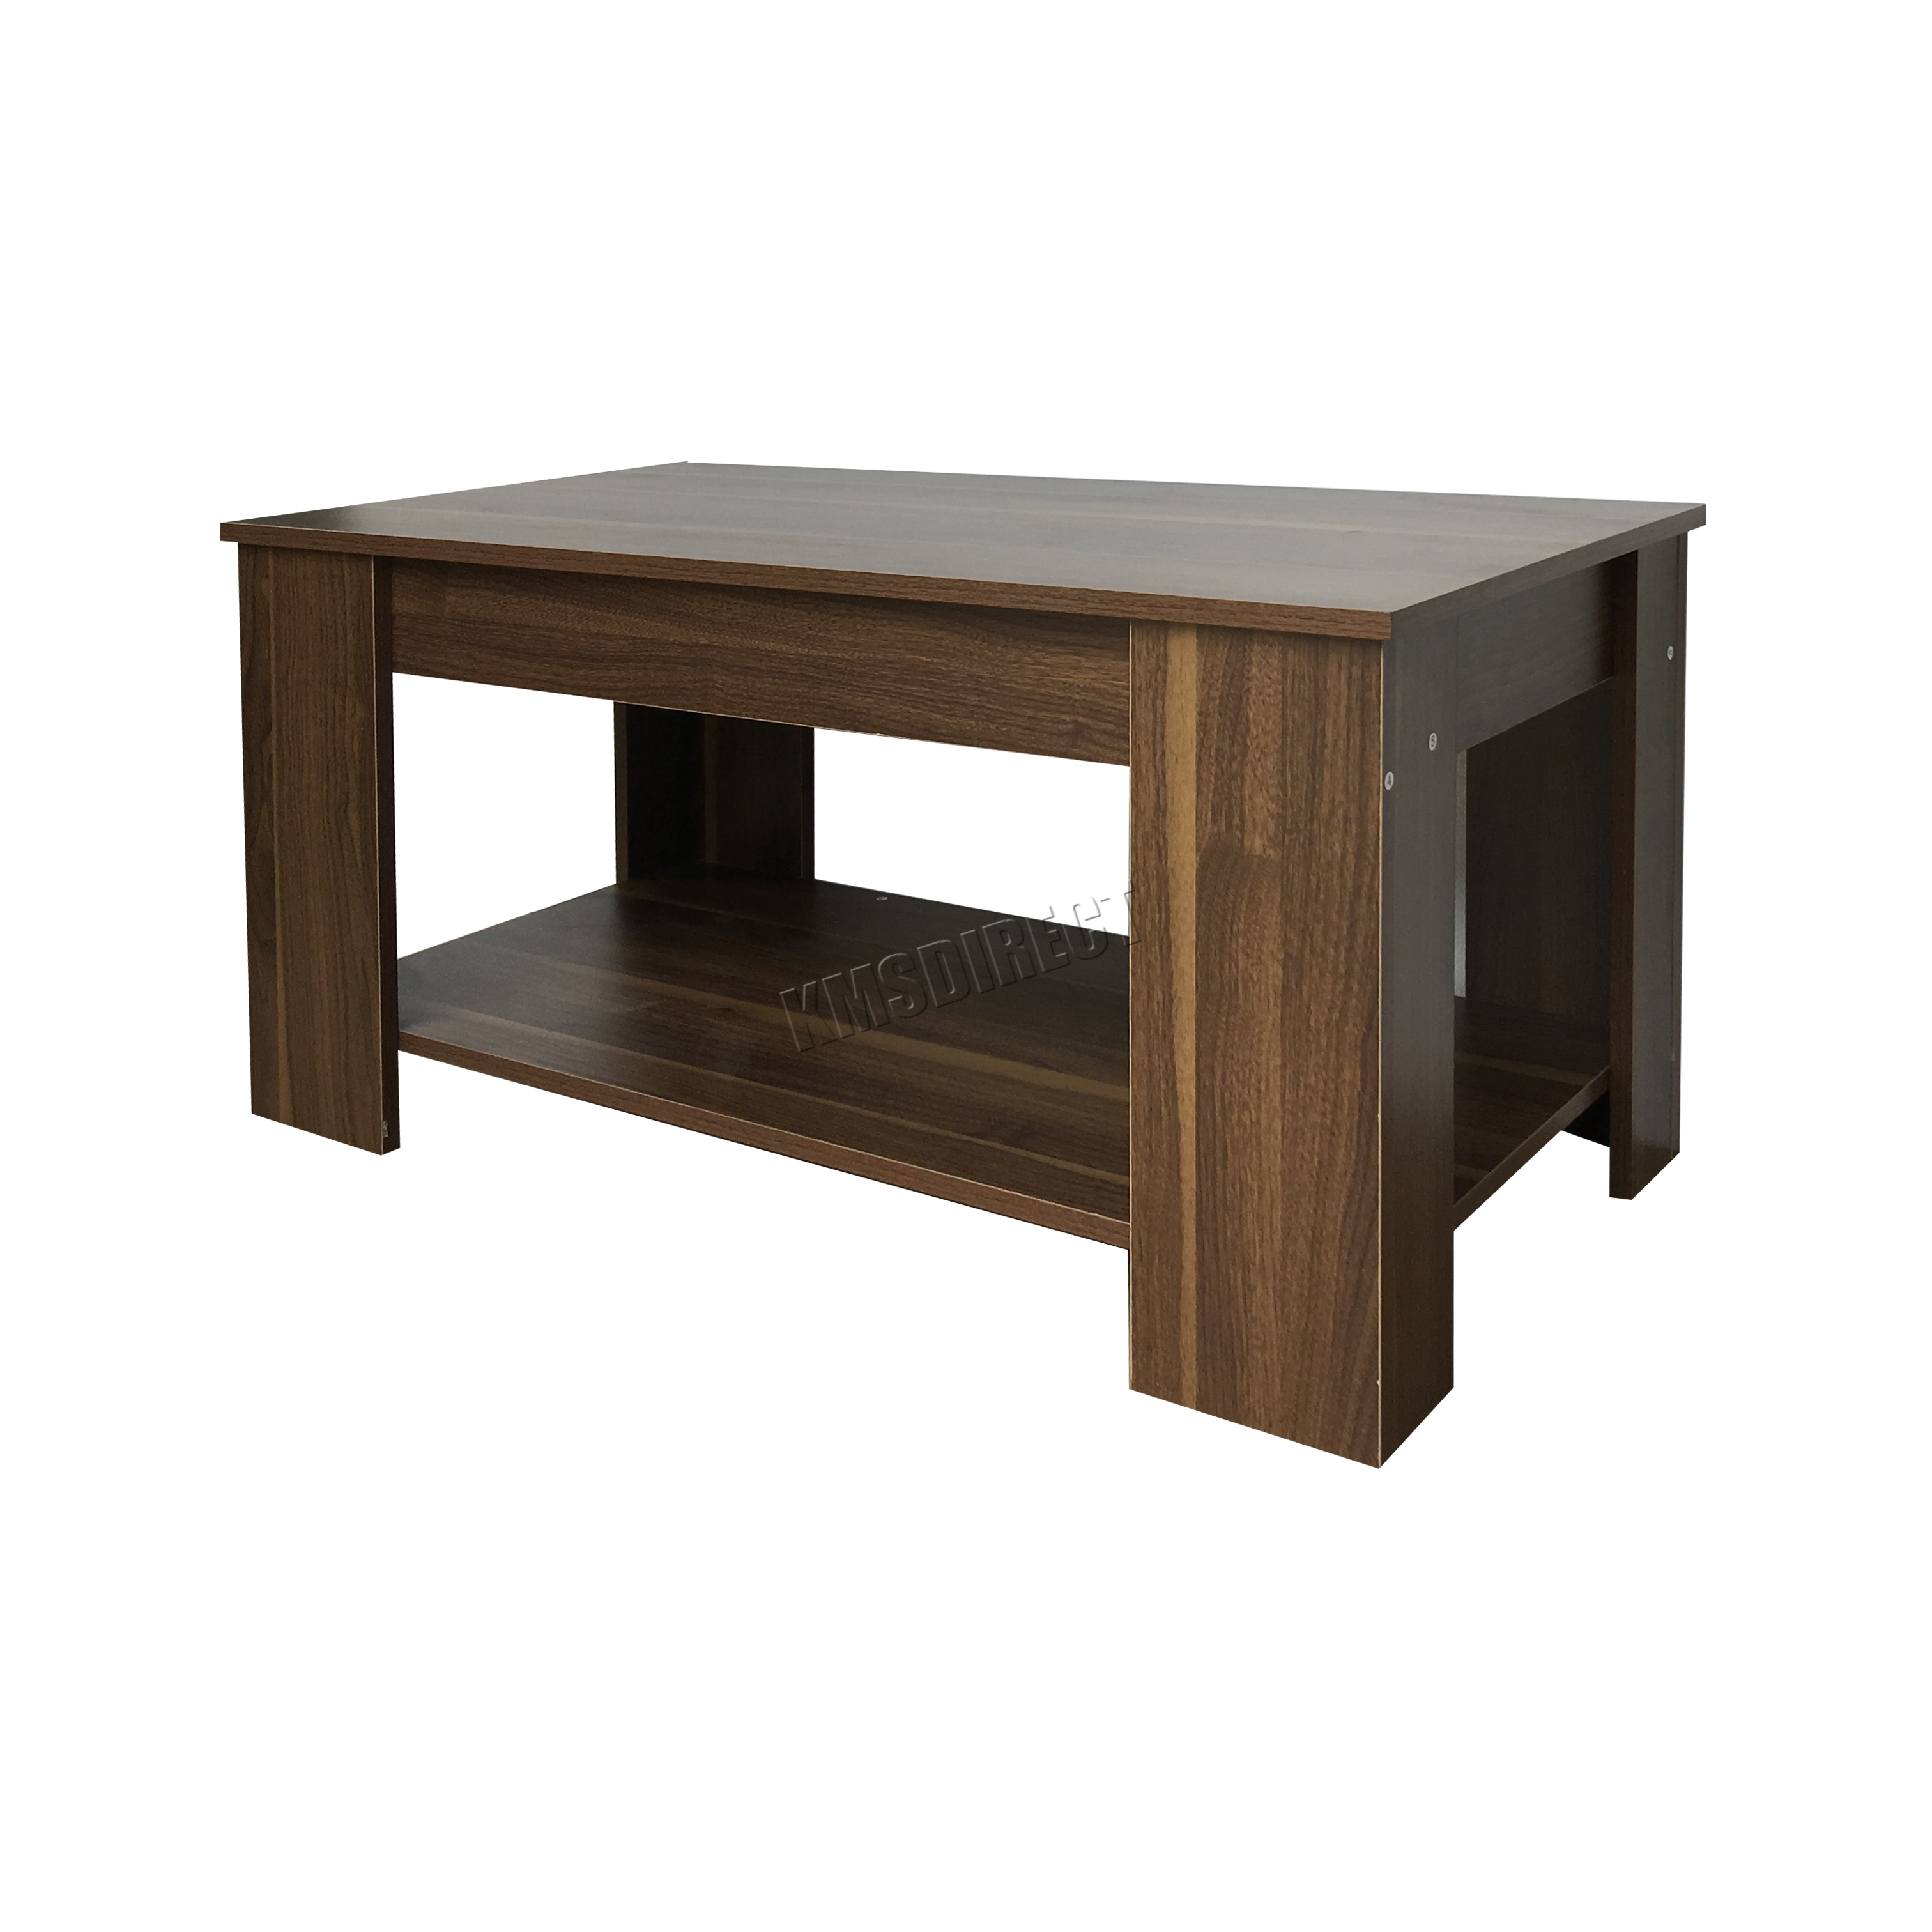 Foxhunter Lift Up Top Coffee Table With Storage Shelf